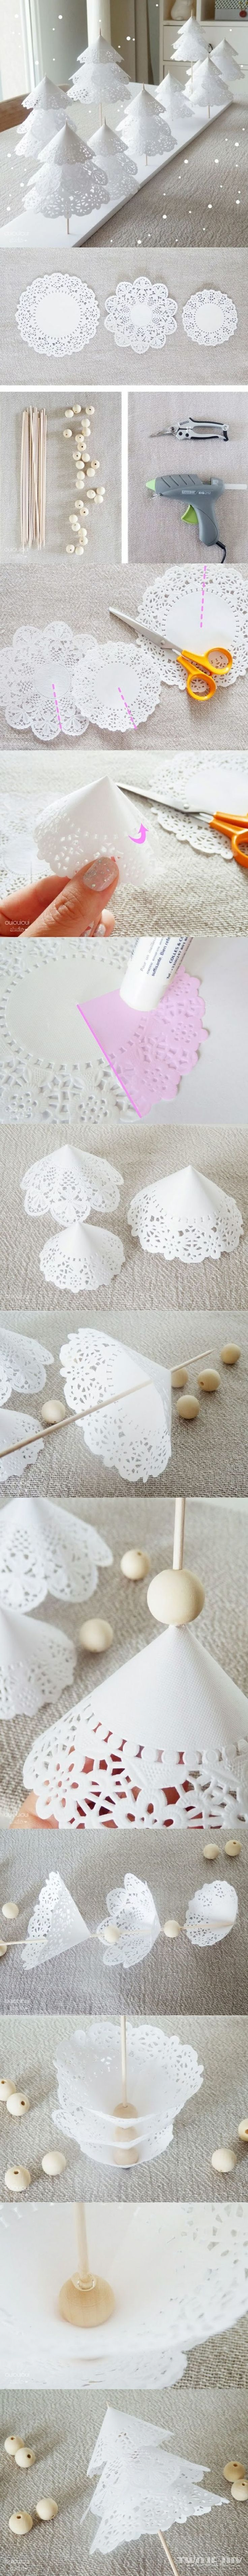 I would use bits of white styrofoam peanuts between doilies....cheaper and would…